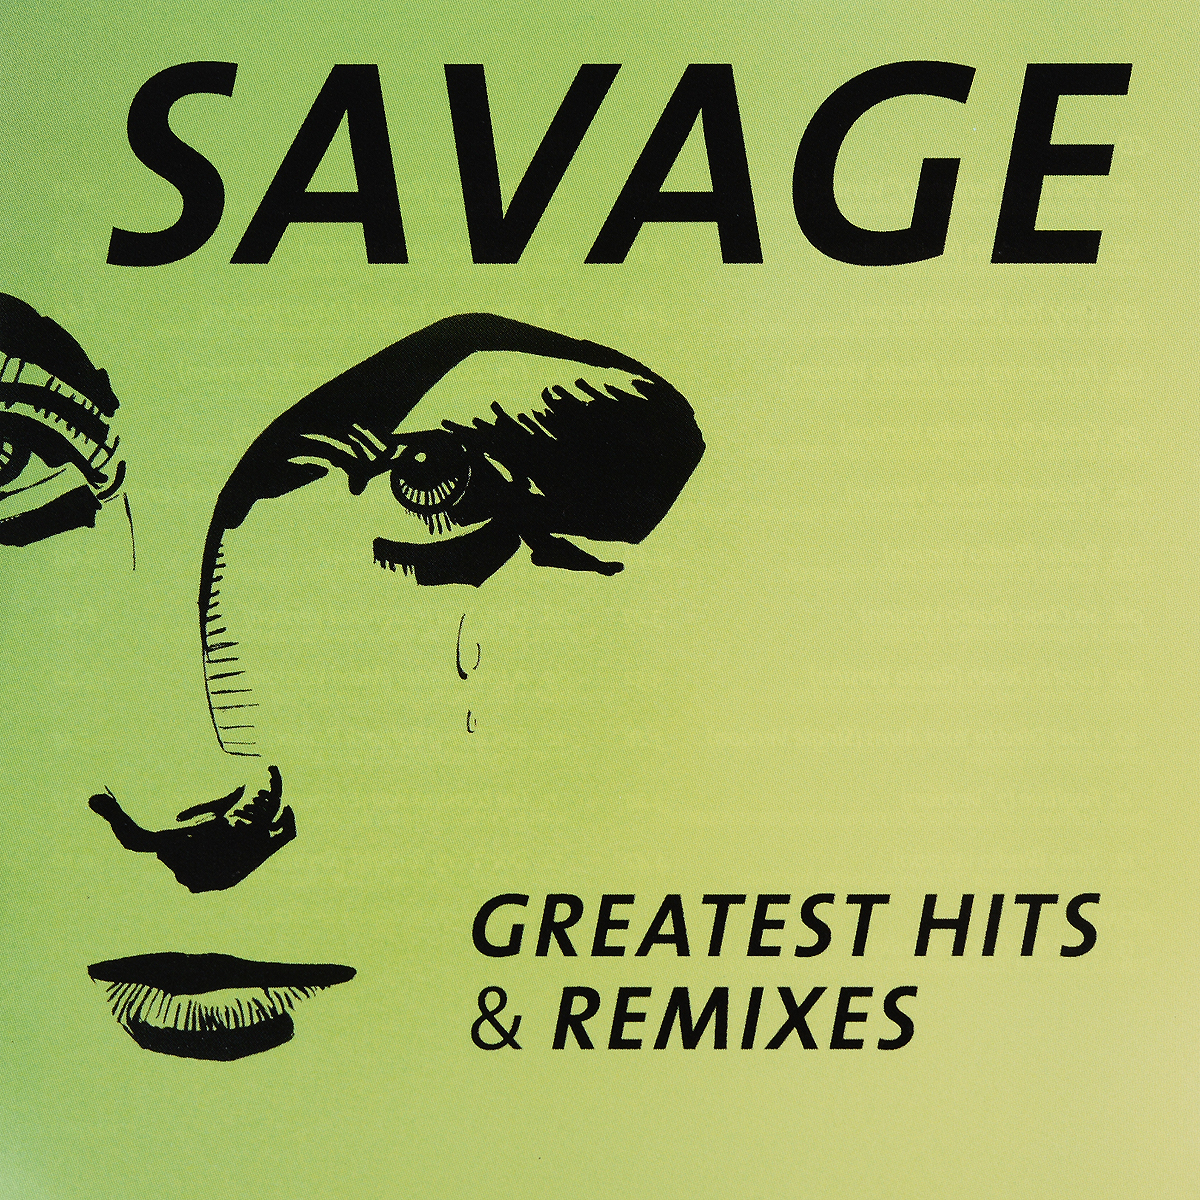 Savage Savage. Greatest Hits & Remixes (2 CD) queen greatest hits cd